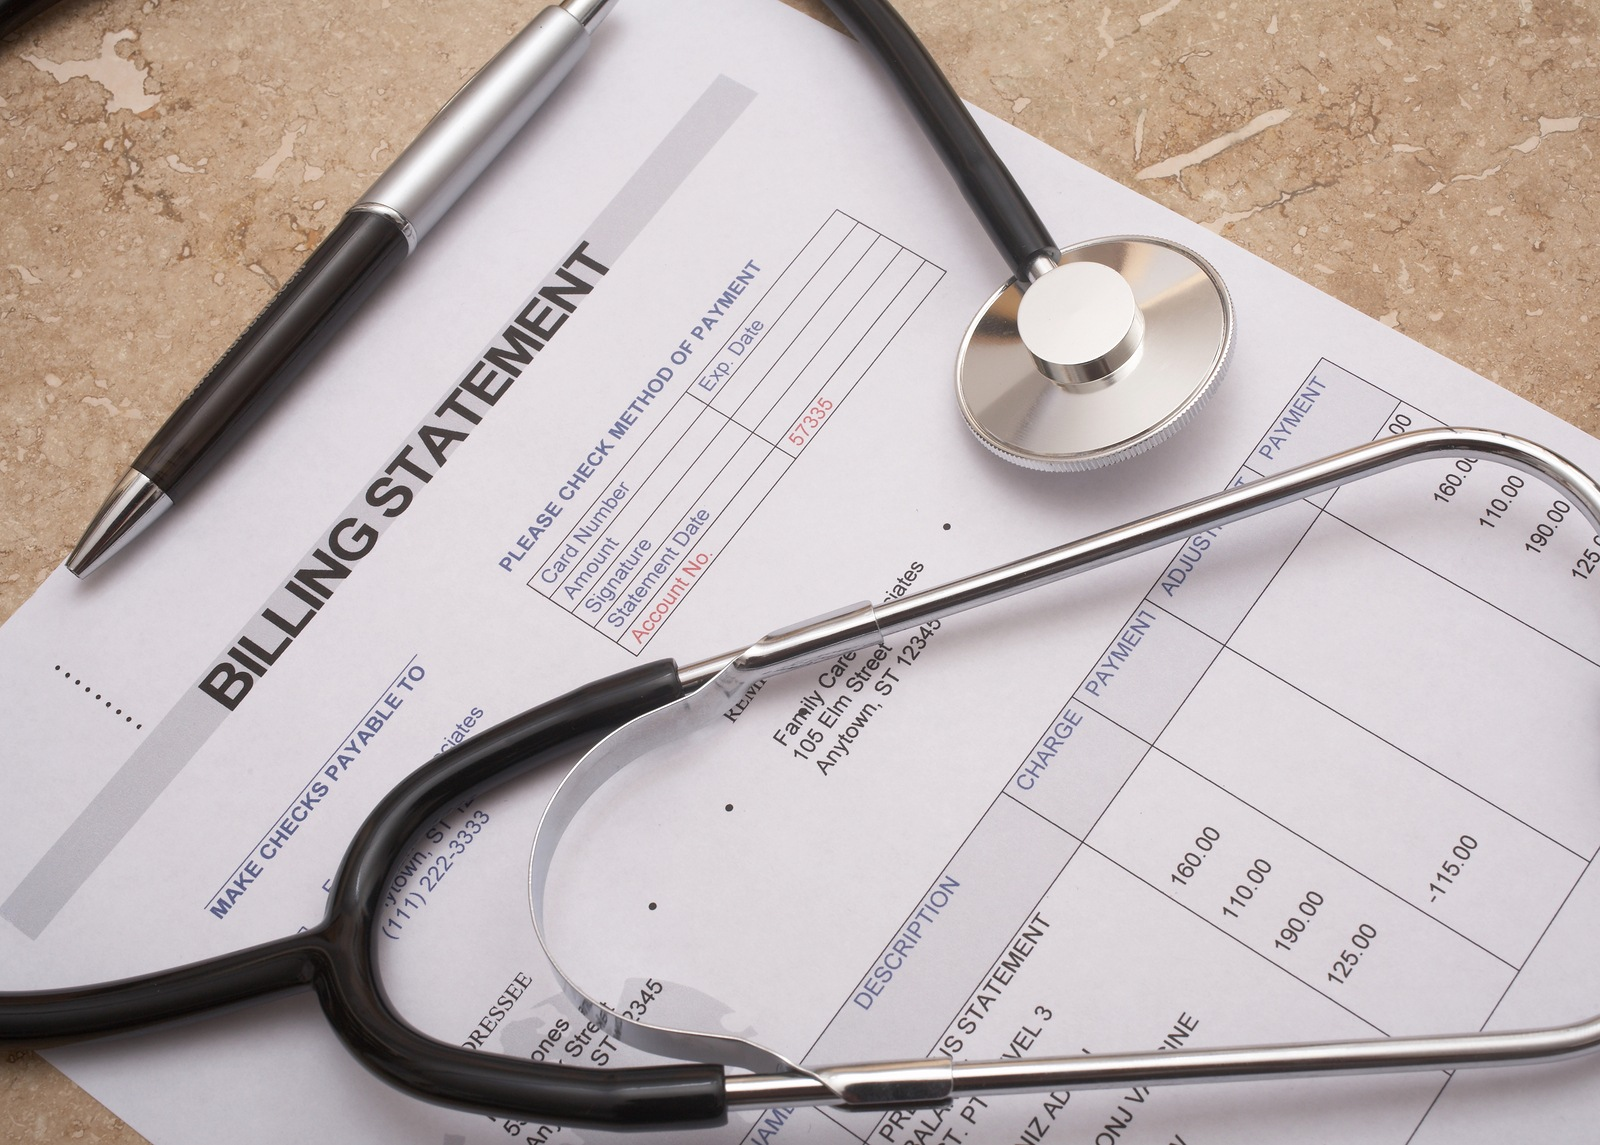 5 Ways To Save Money On Medical Bills